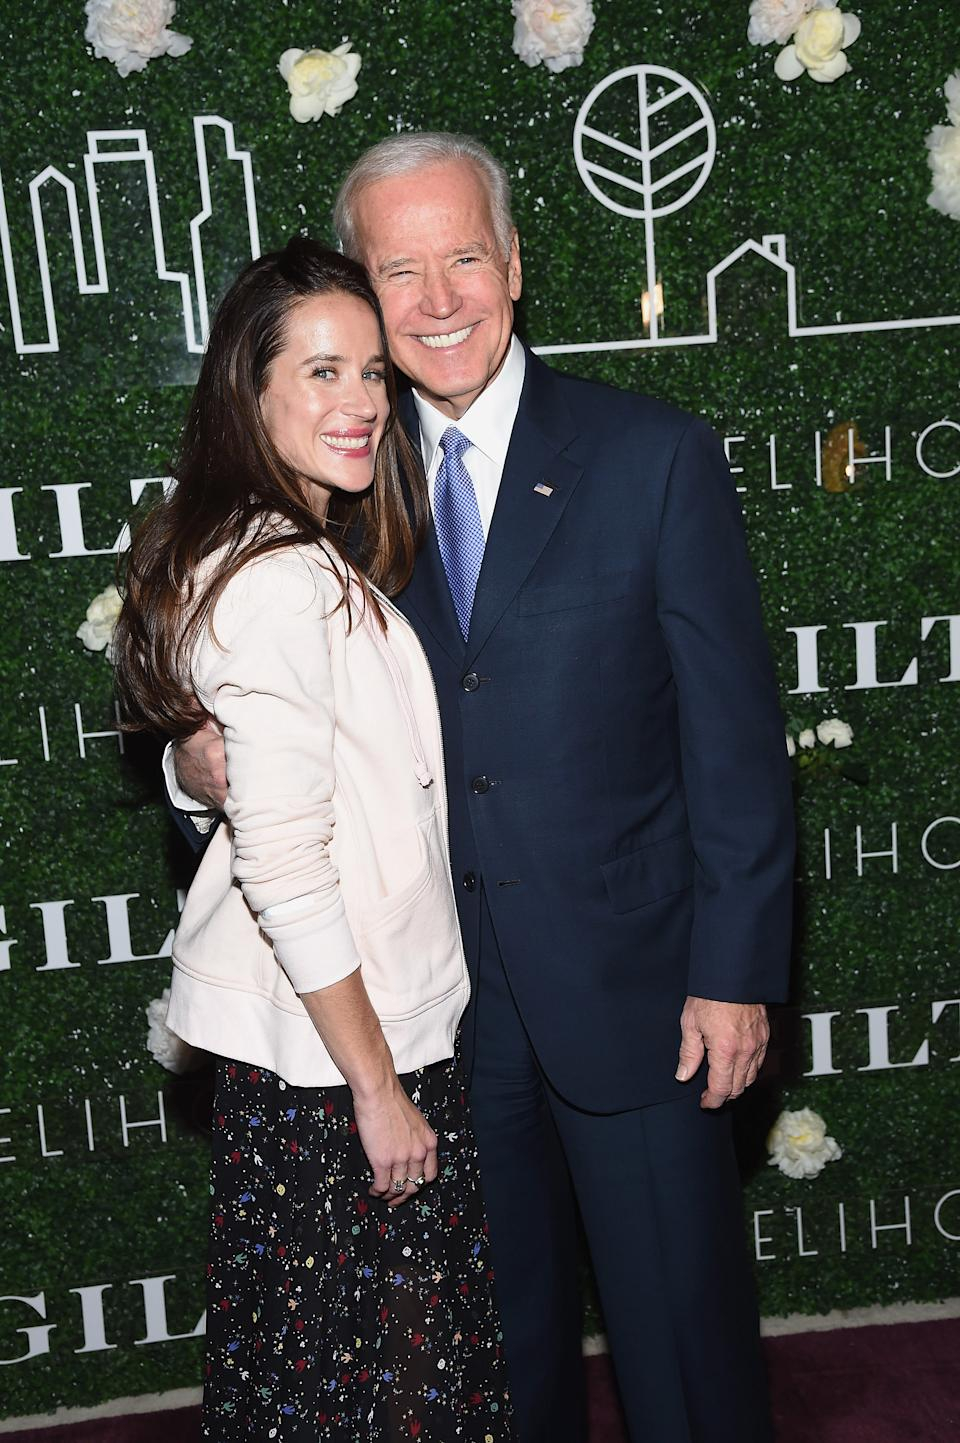 Ashley Biden and Joe Biden attend Gilt x Livelihood launch event at Spring Place on February 7, 2017 in New York City.